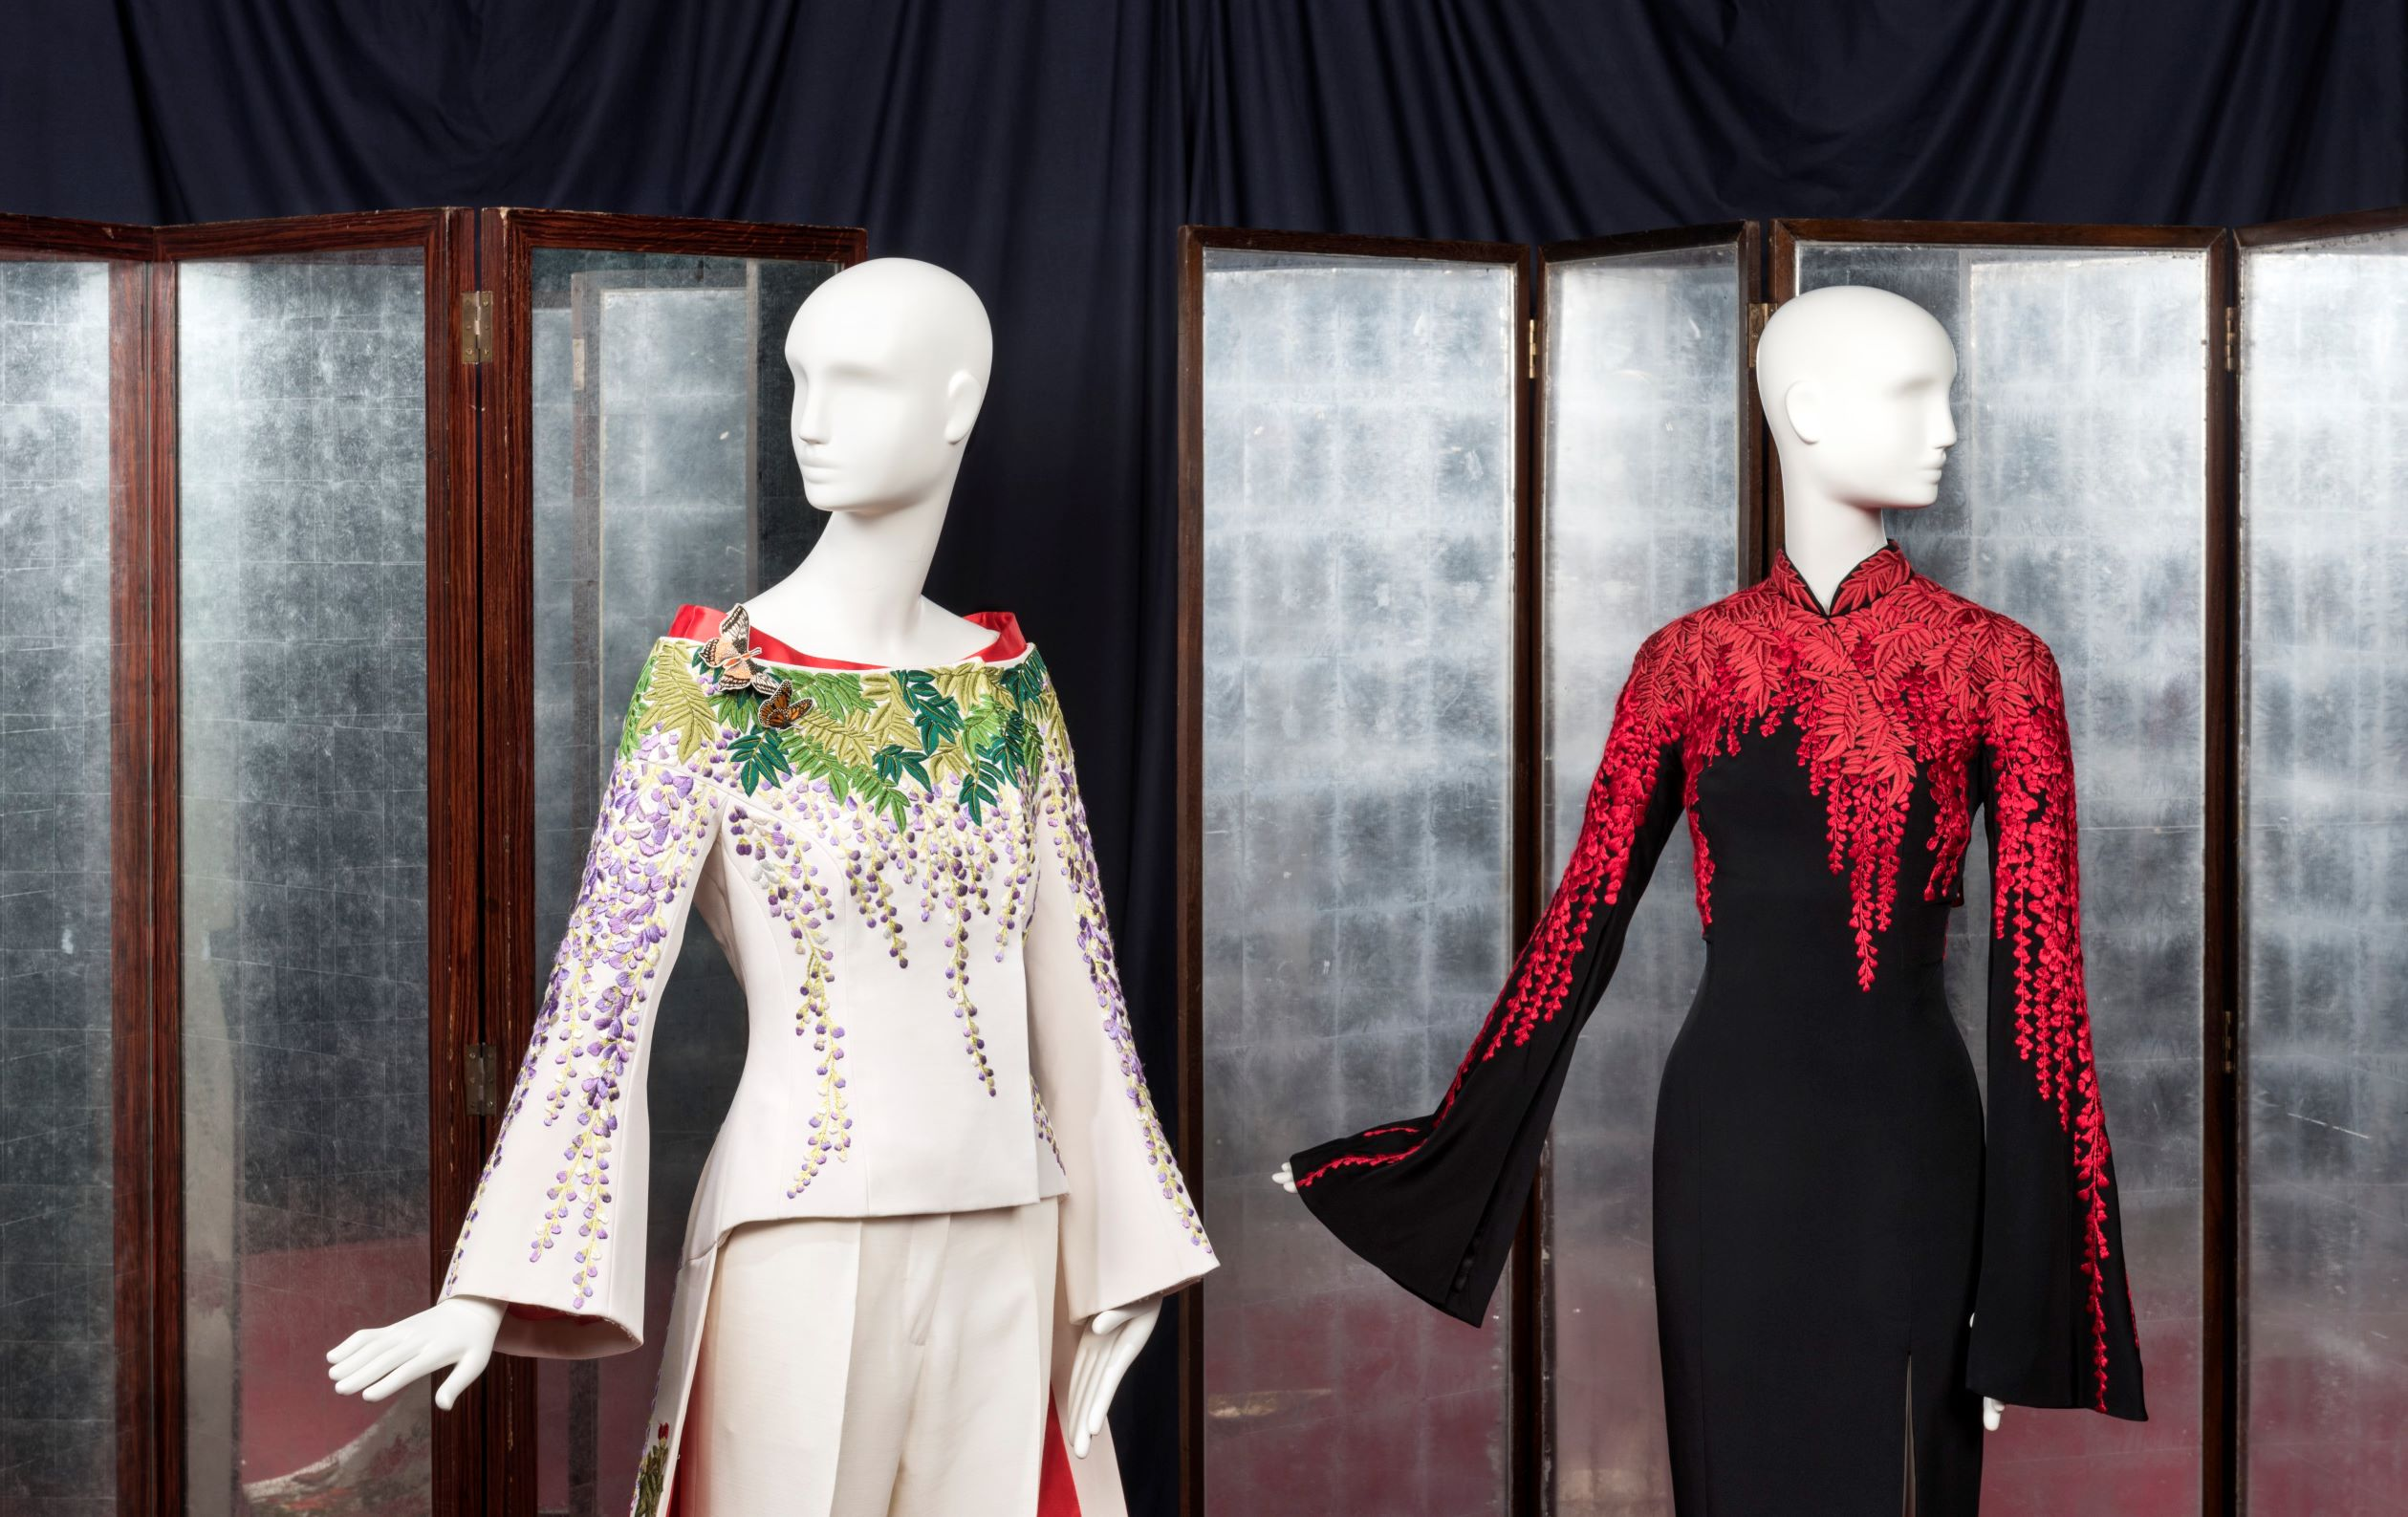 Embroidered looks from the L'Wren Scott online sale at Christie's.